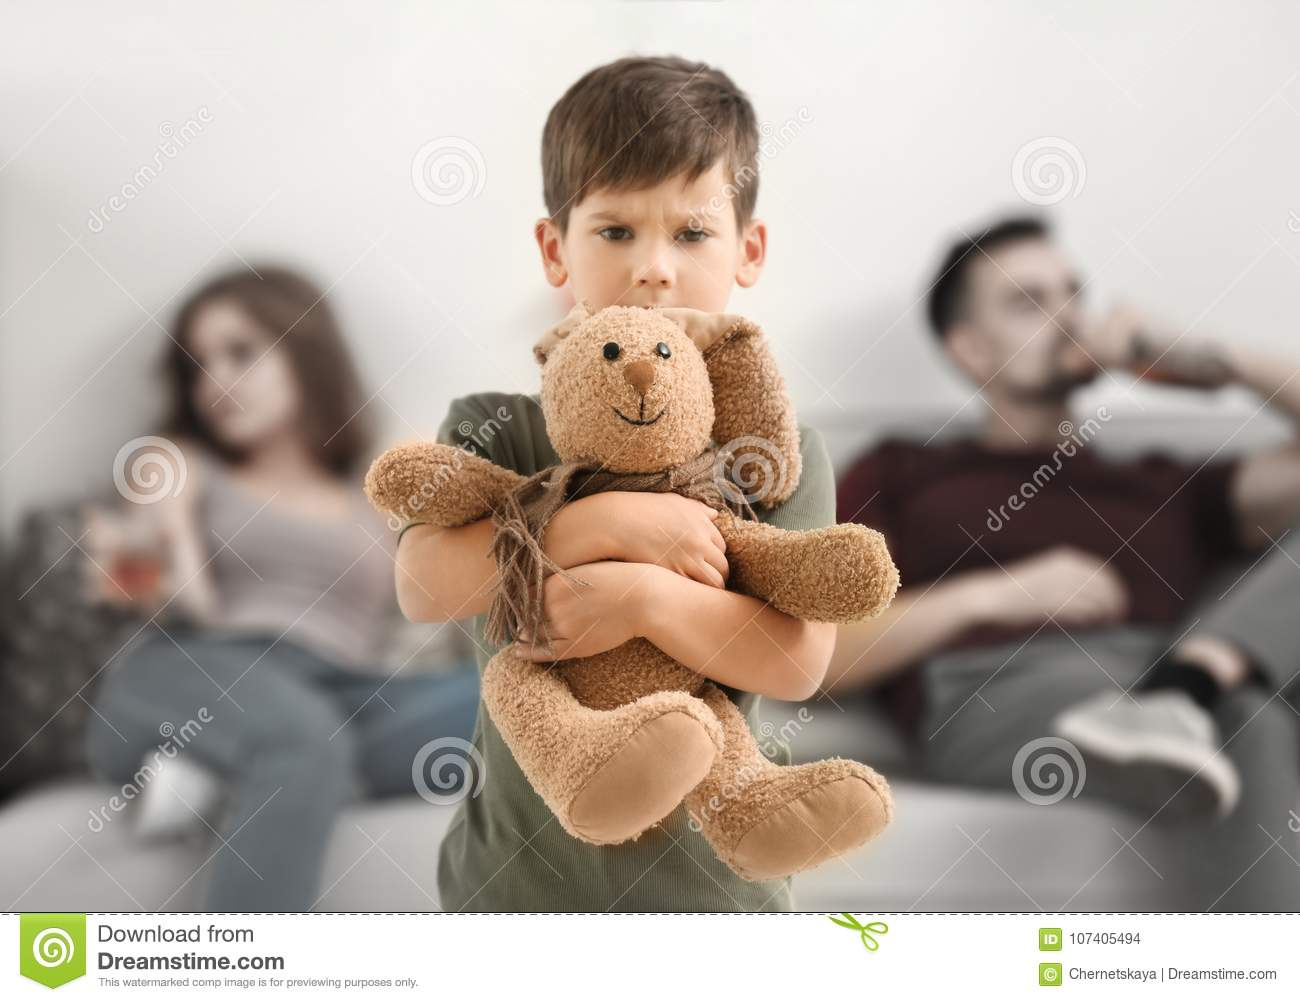 Upset little boy hugging toy bunny while his parents drinking alcohol